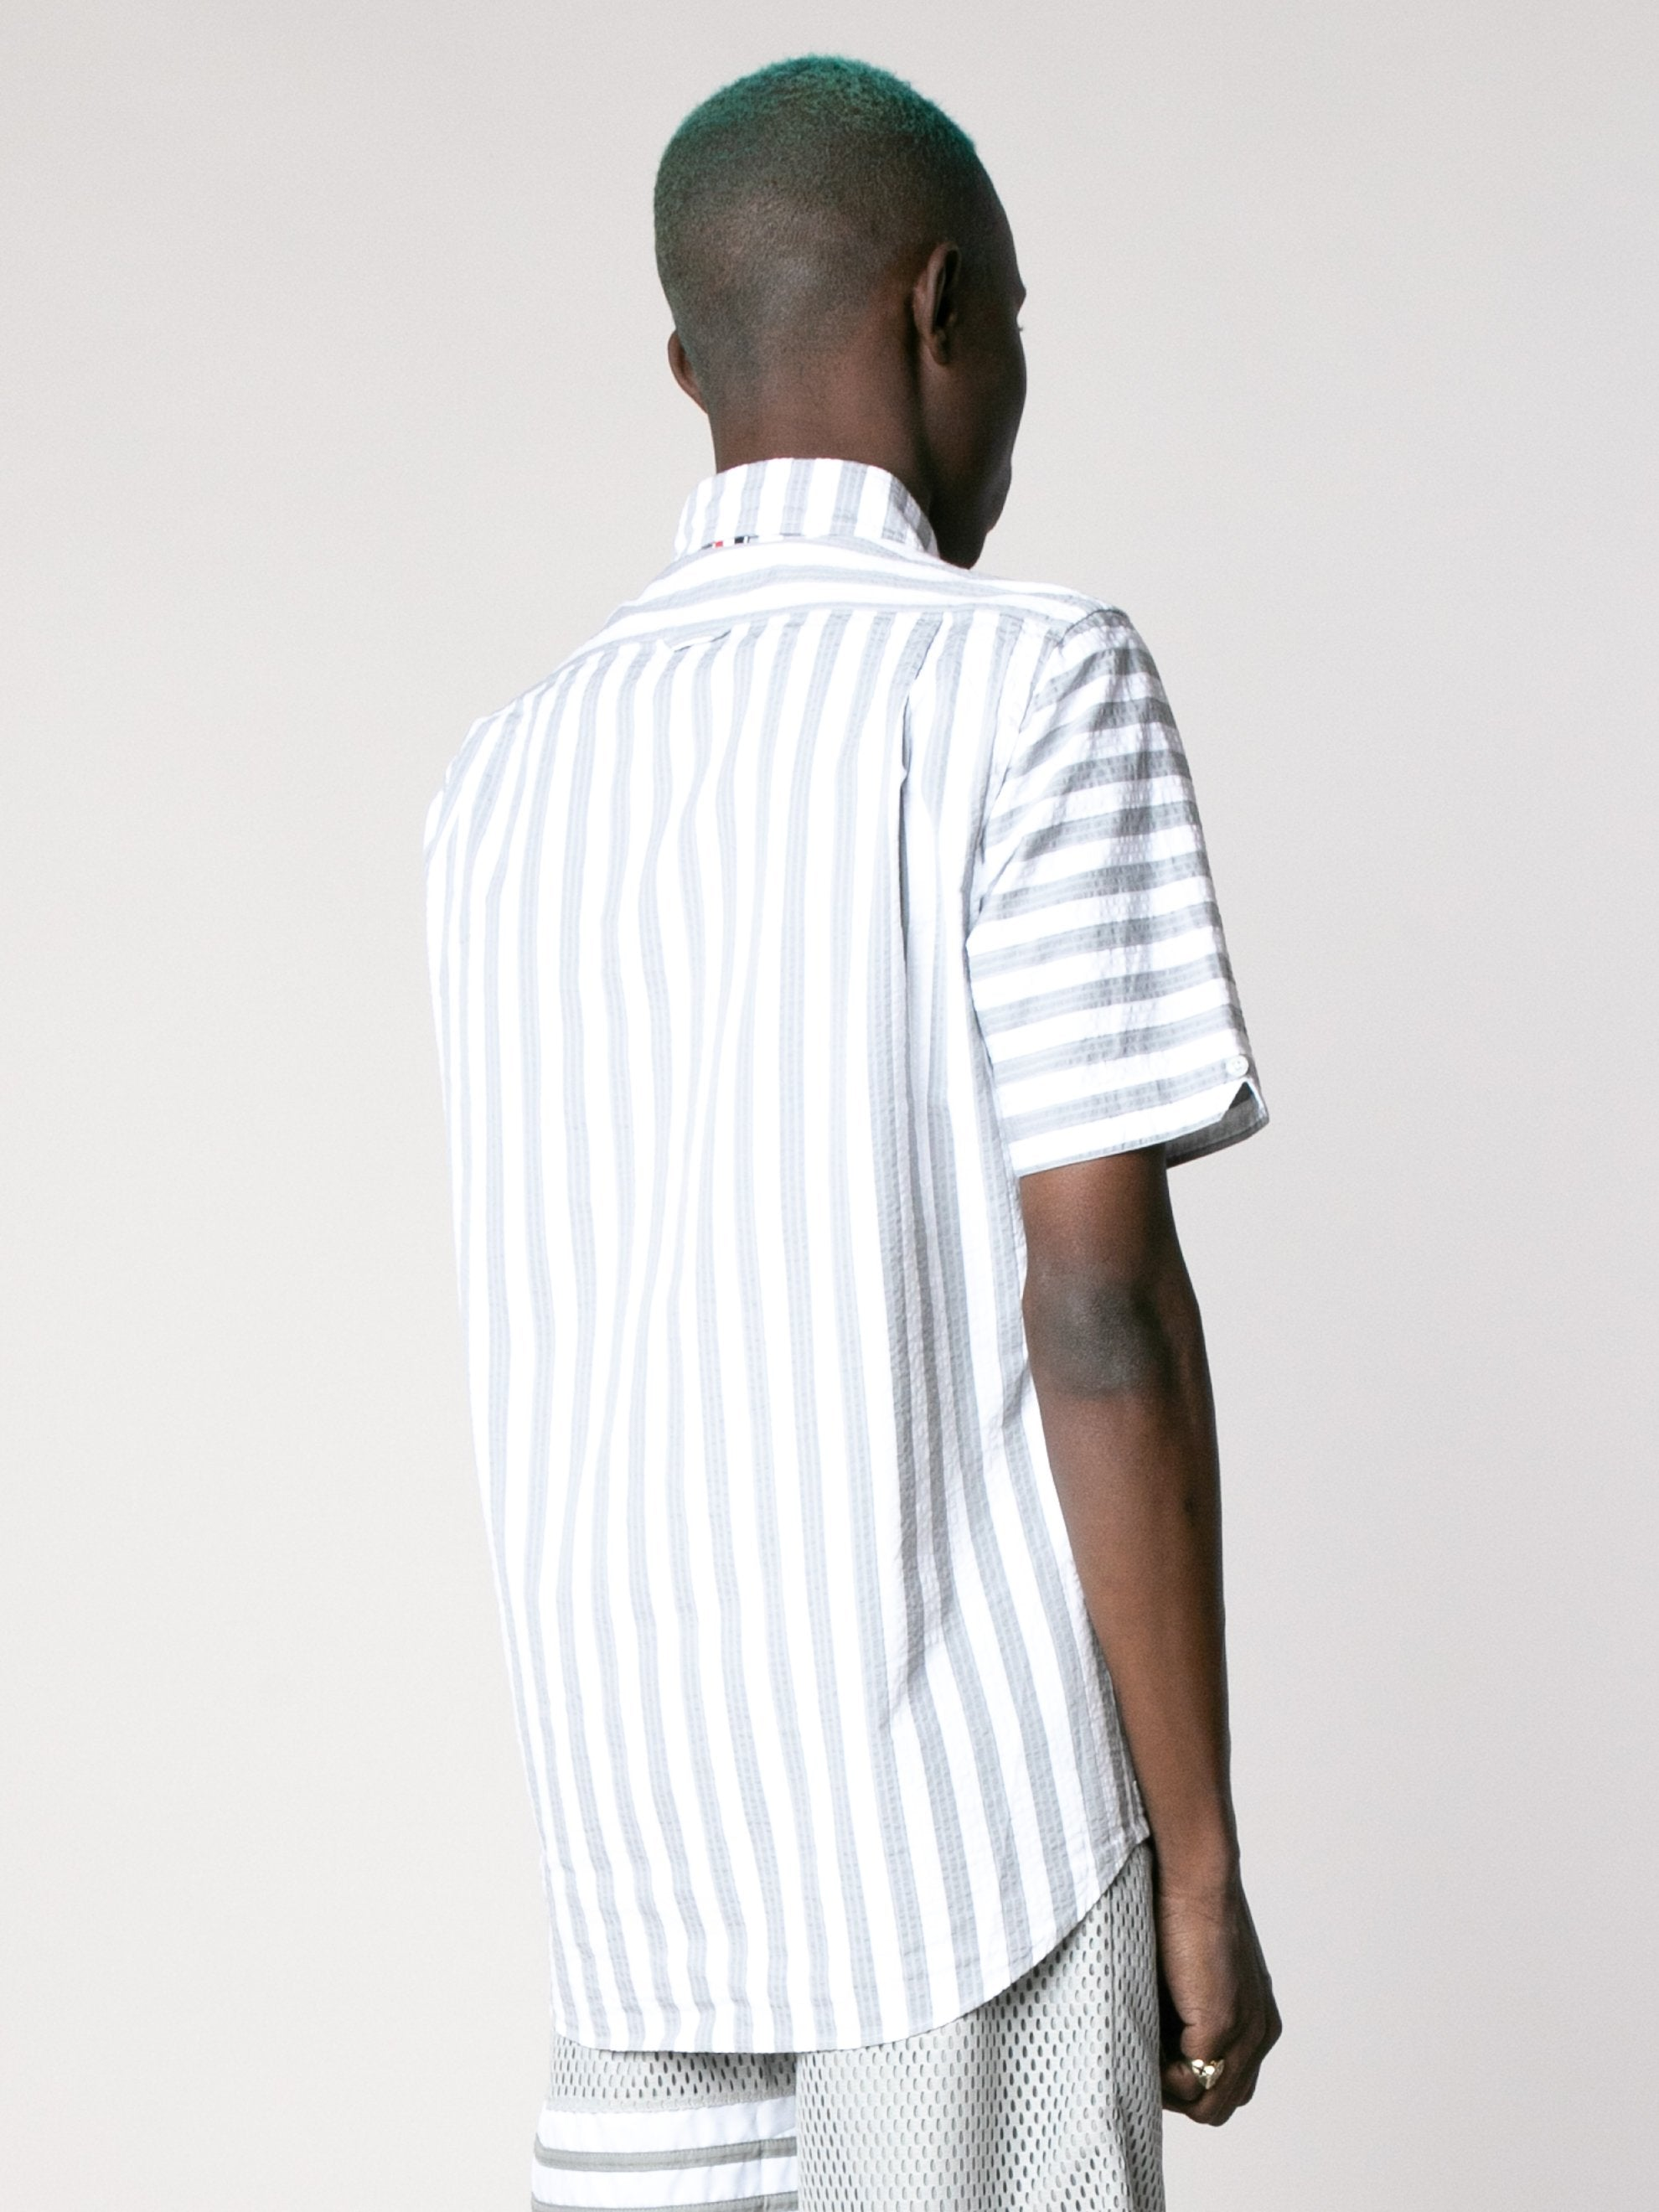 Straight Fit Button Down Short Sleeve Shirt In Engineered RWB Wide Universty Stripe Shirt Seersucker